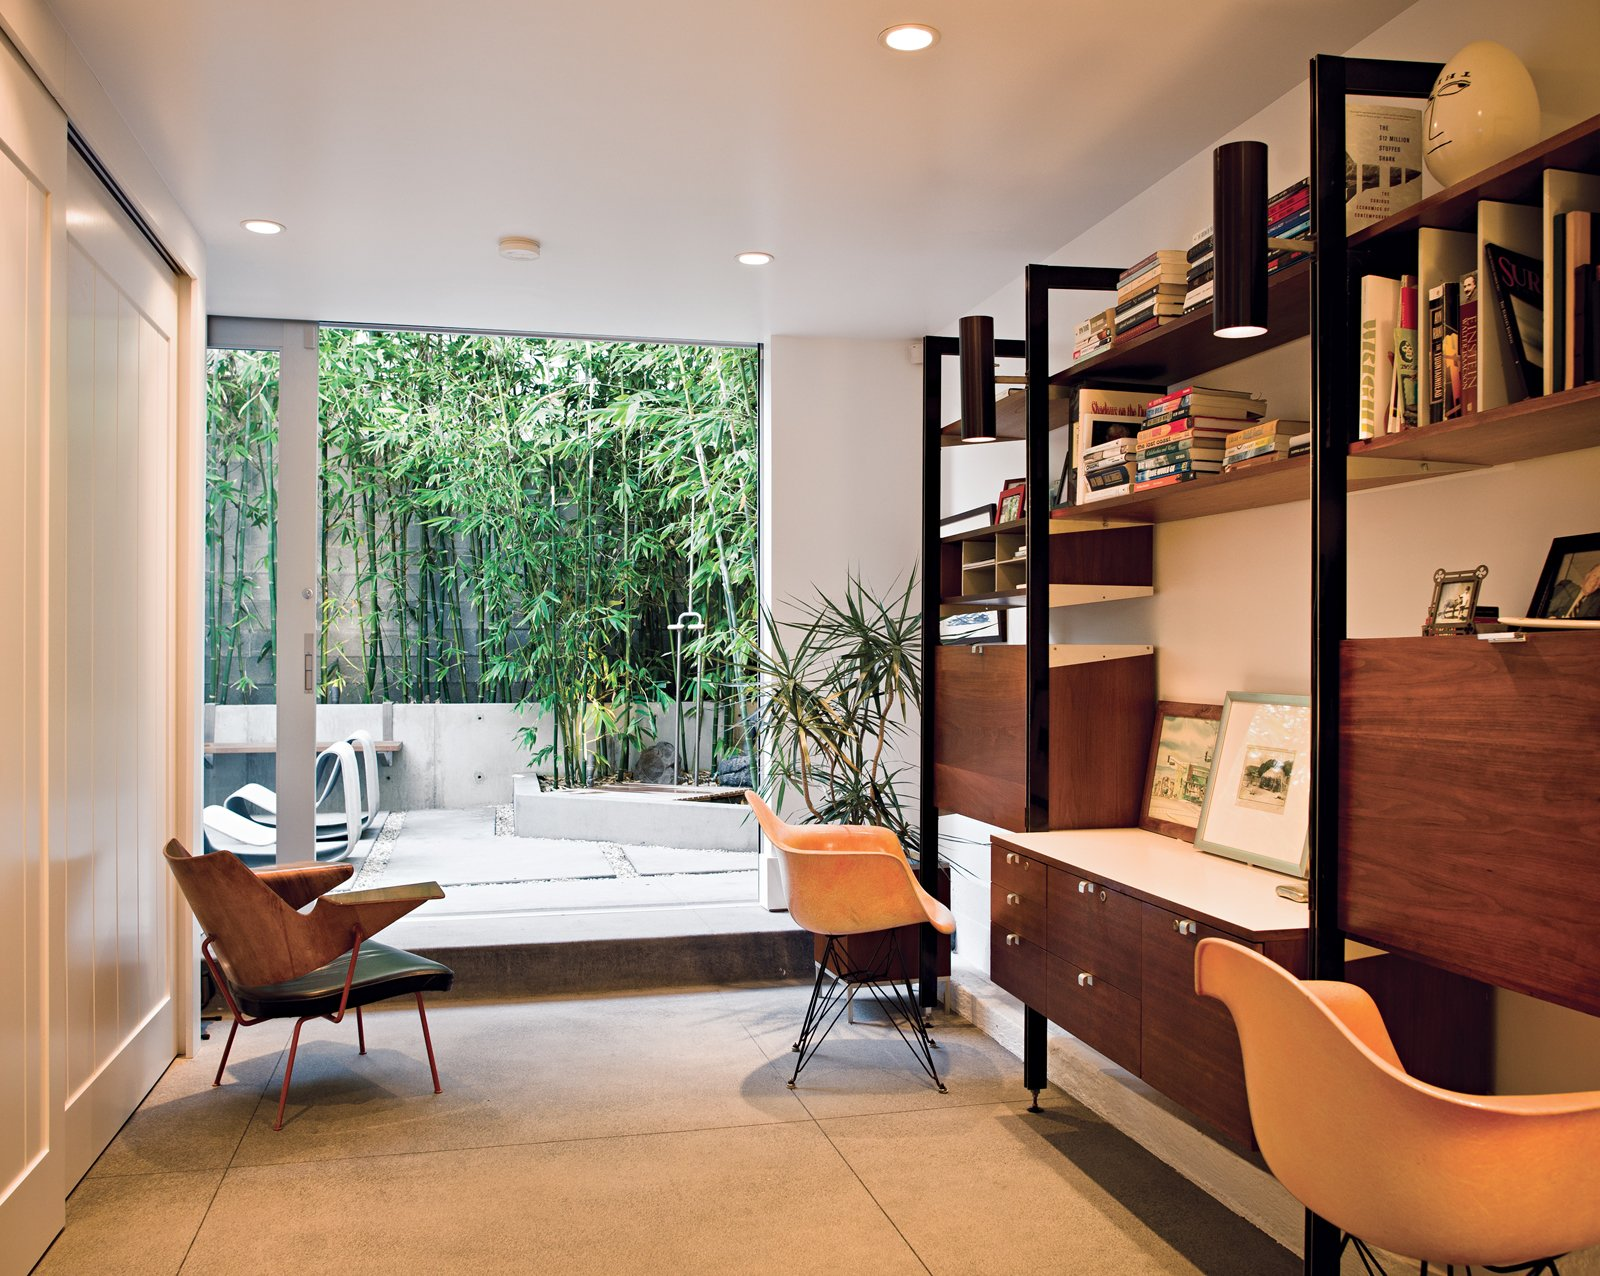 Office, Study Room Type, Desk, and Chair A bentwood Robin Day chair keeps the Herman Miller classics company. Through the office's door, nestled in the bamboo grove, is an outdoor shower, fashioned after those found in San Onofre, farther south.  Photo 11 of 18 in Less is More in this Manhattan Beach Bungalow